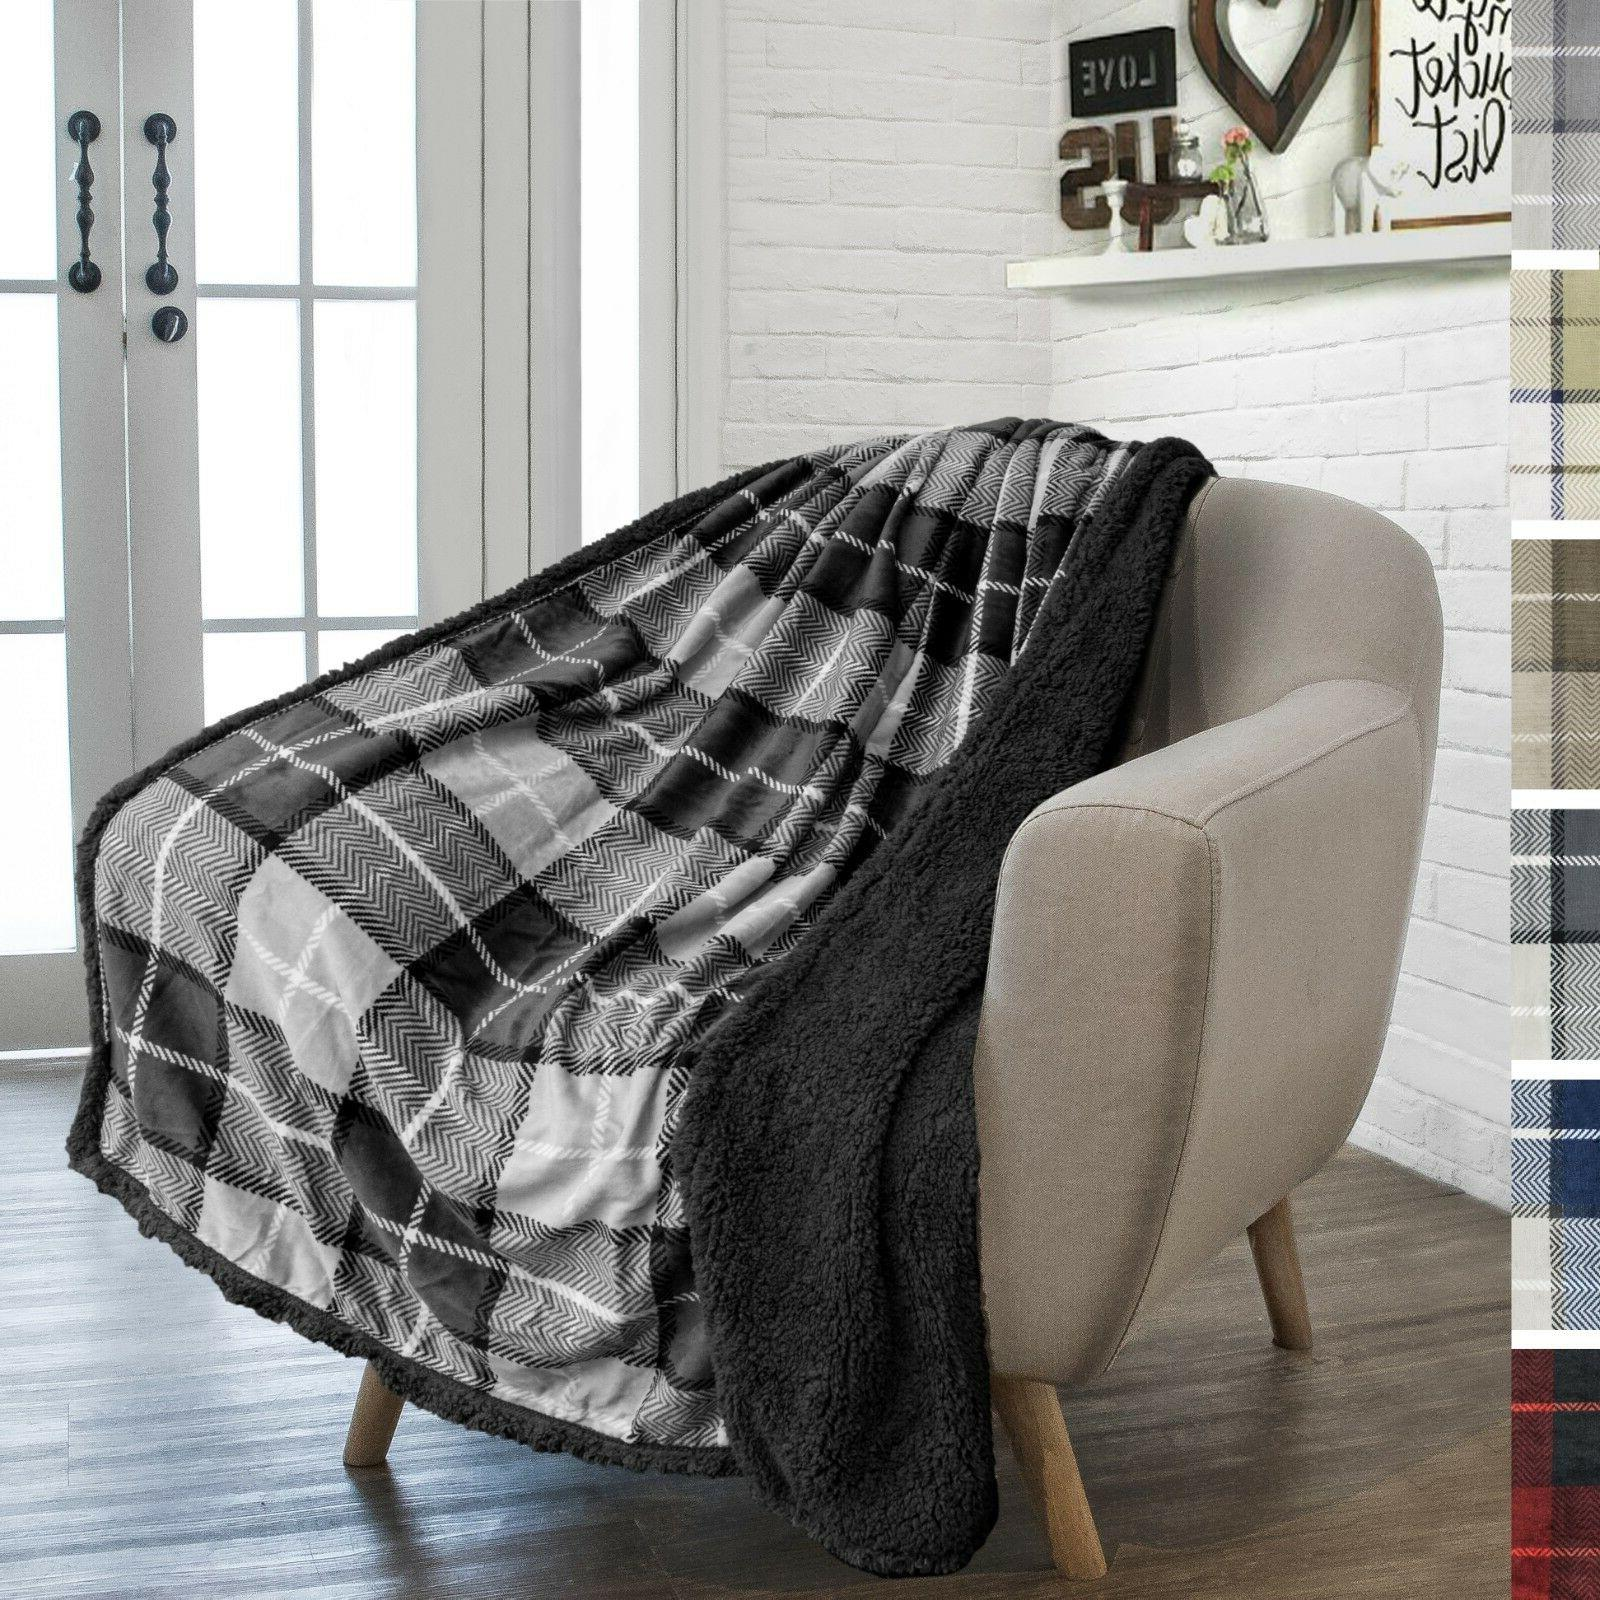 Plaid Blanket Couch Sofa Sherpa